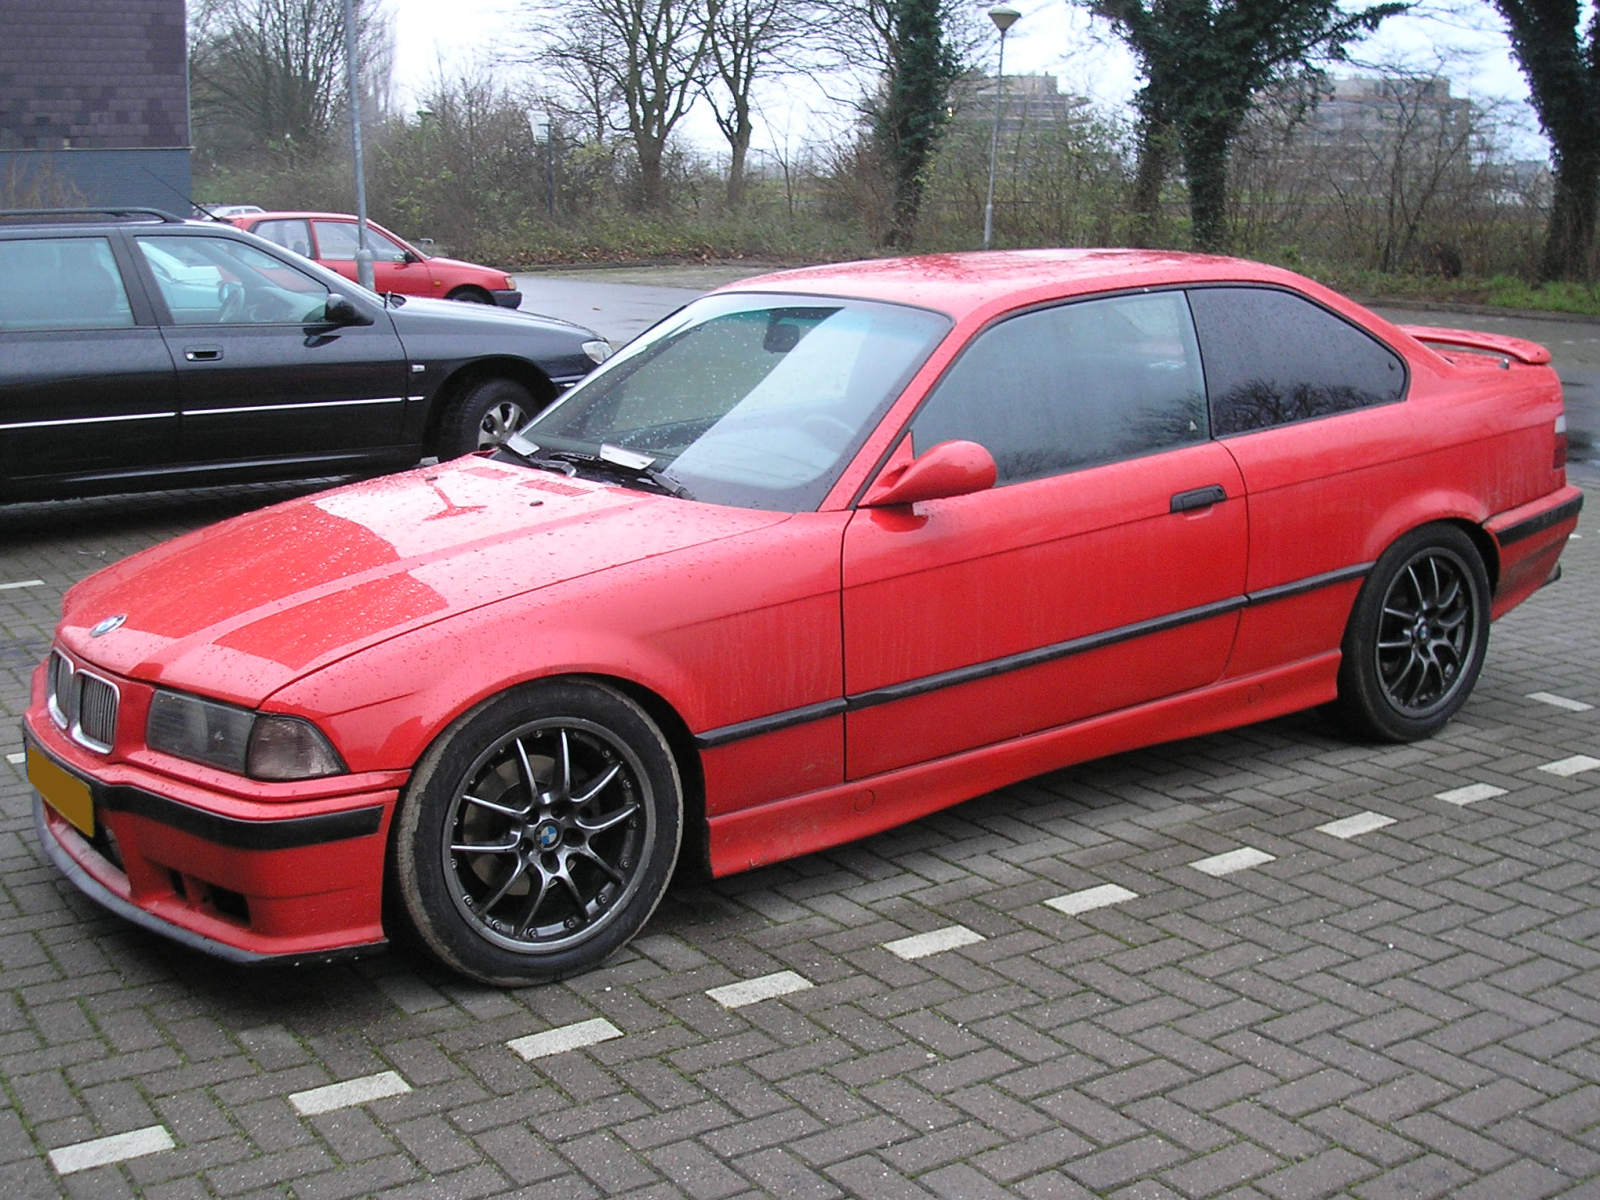 BMW 318is coupe (E36)